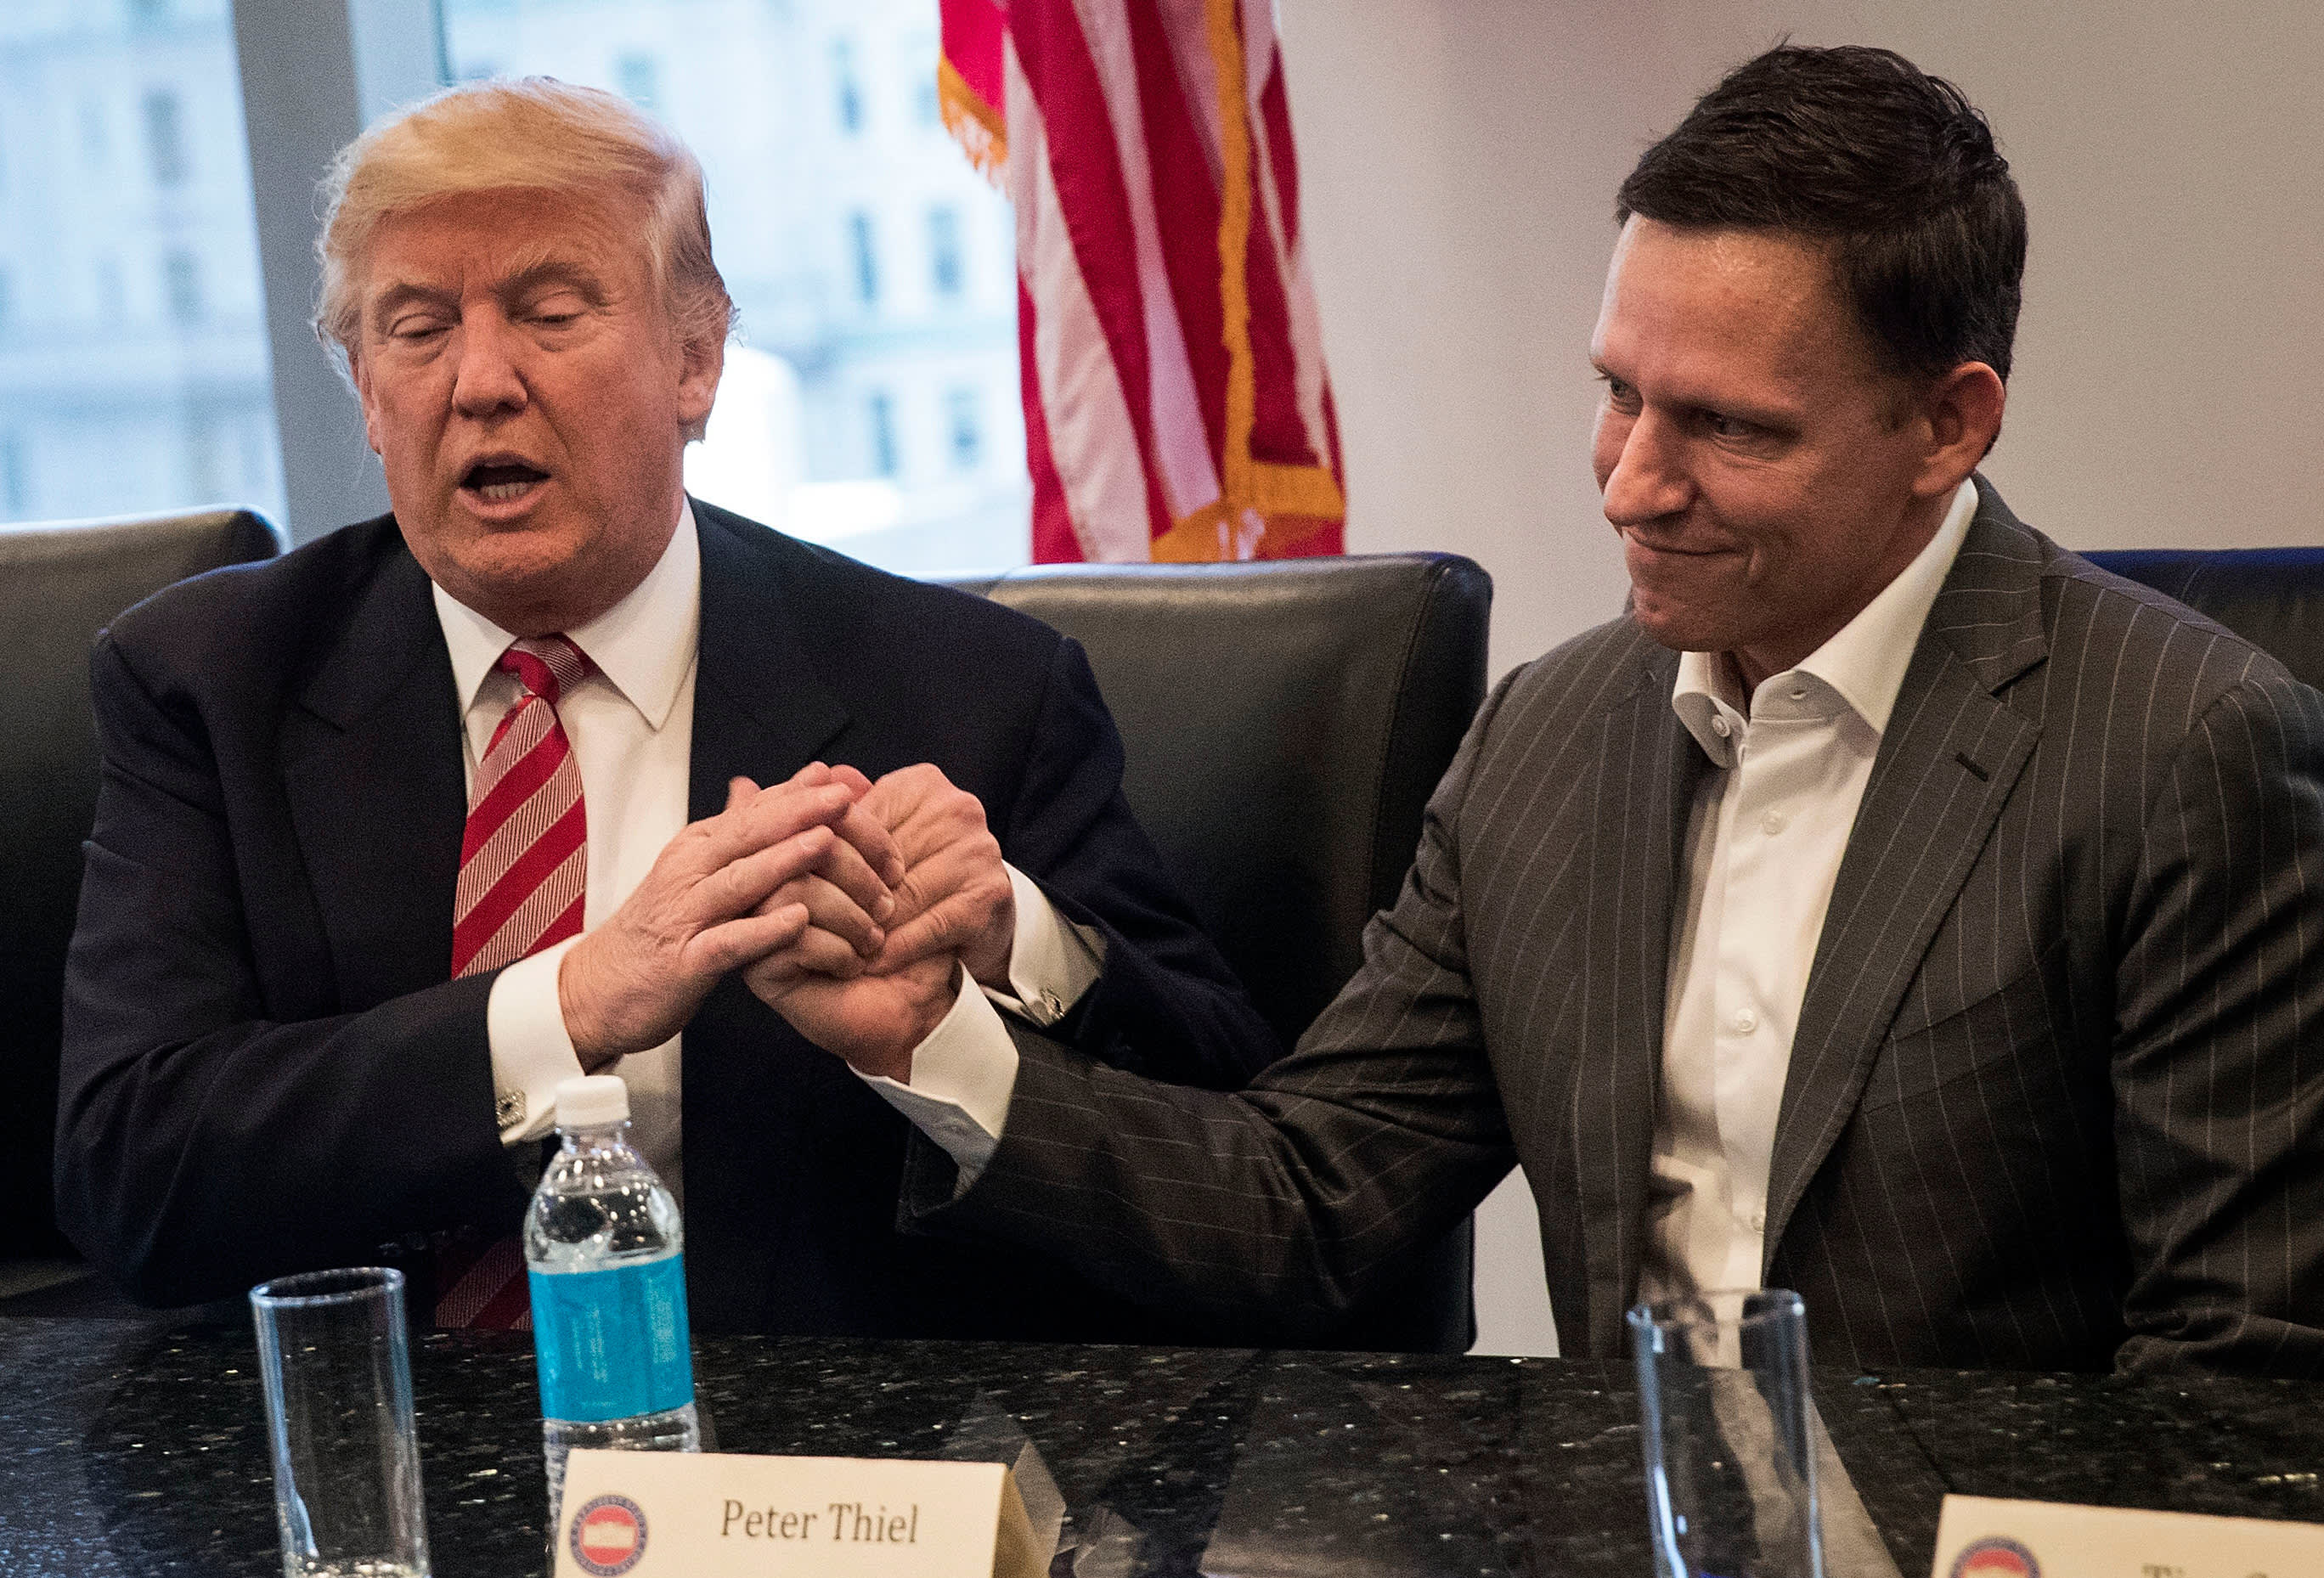 Thiel's Palantir could aid in immigration crackdown